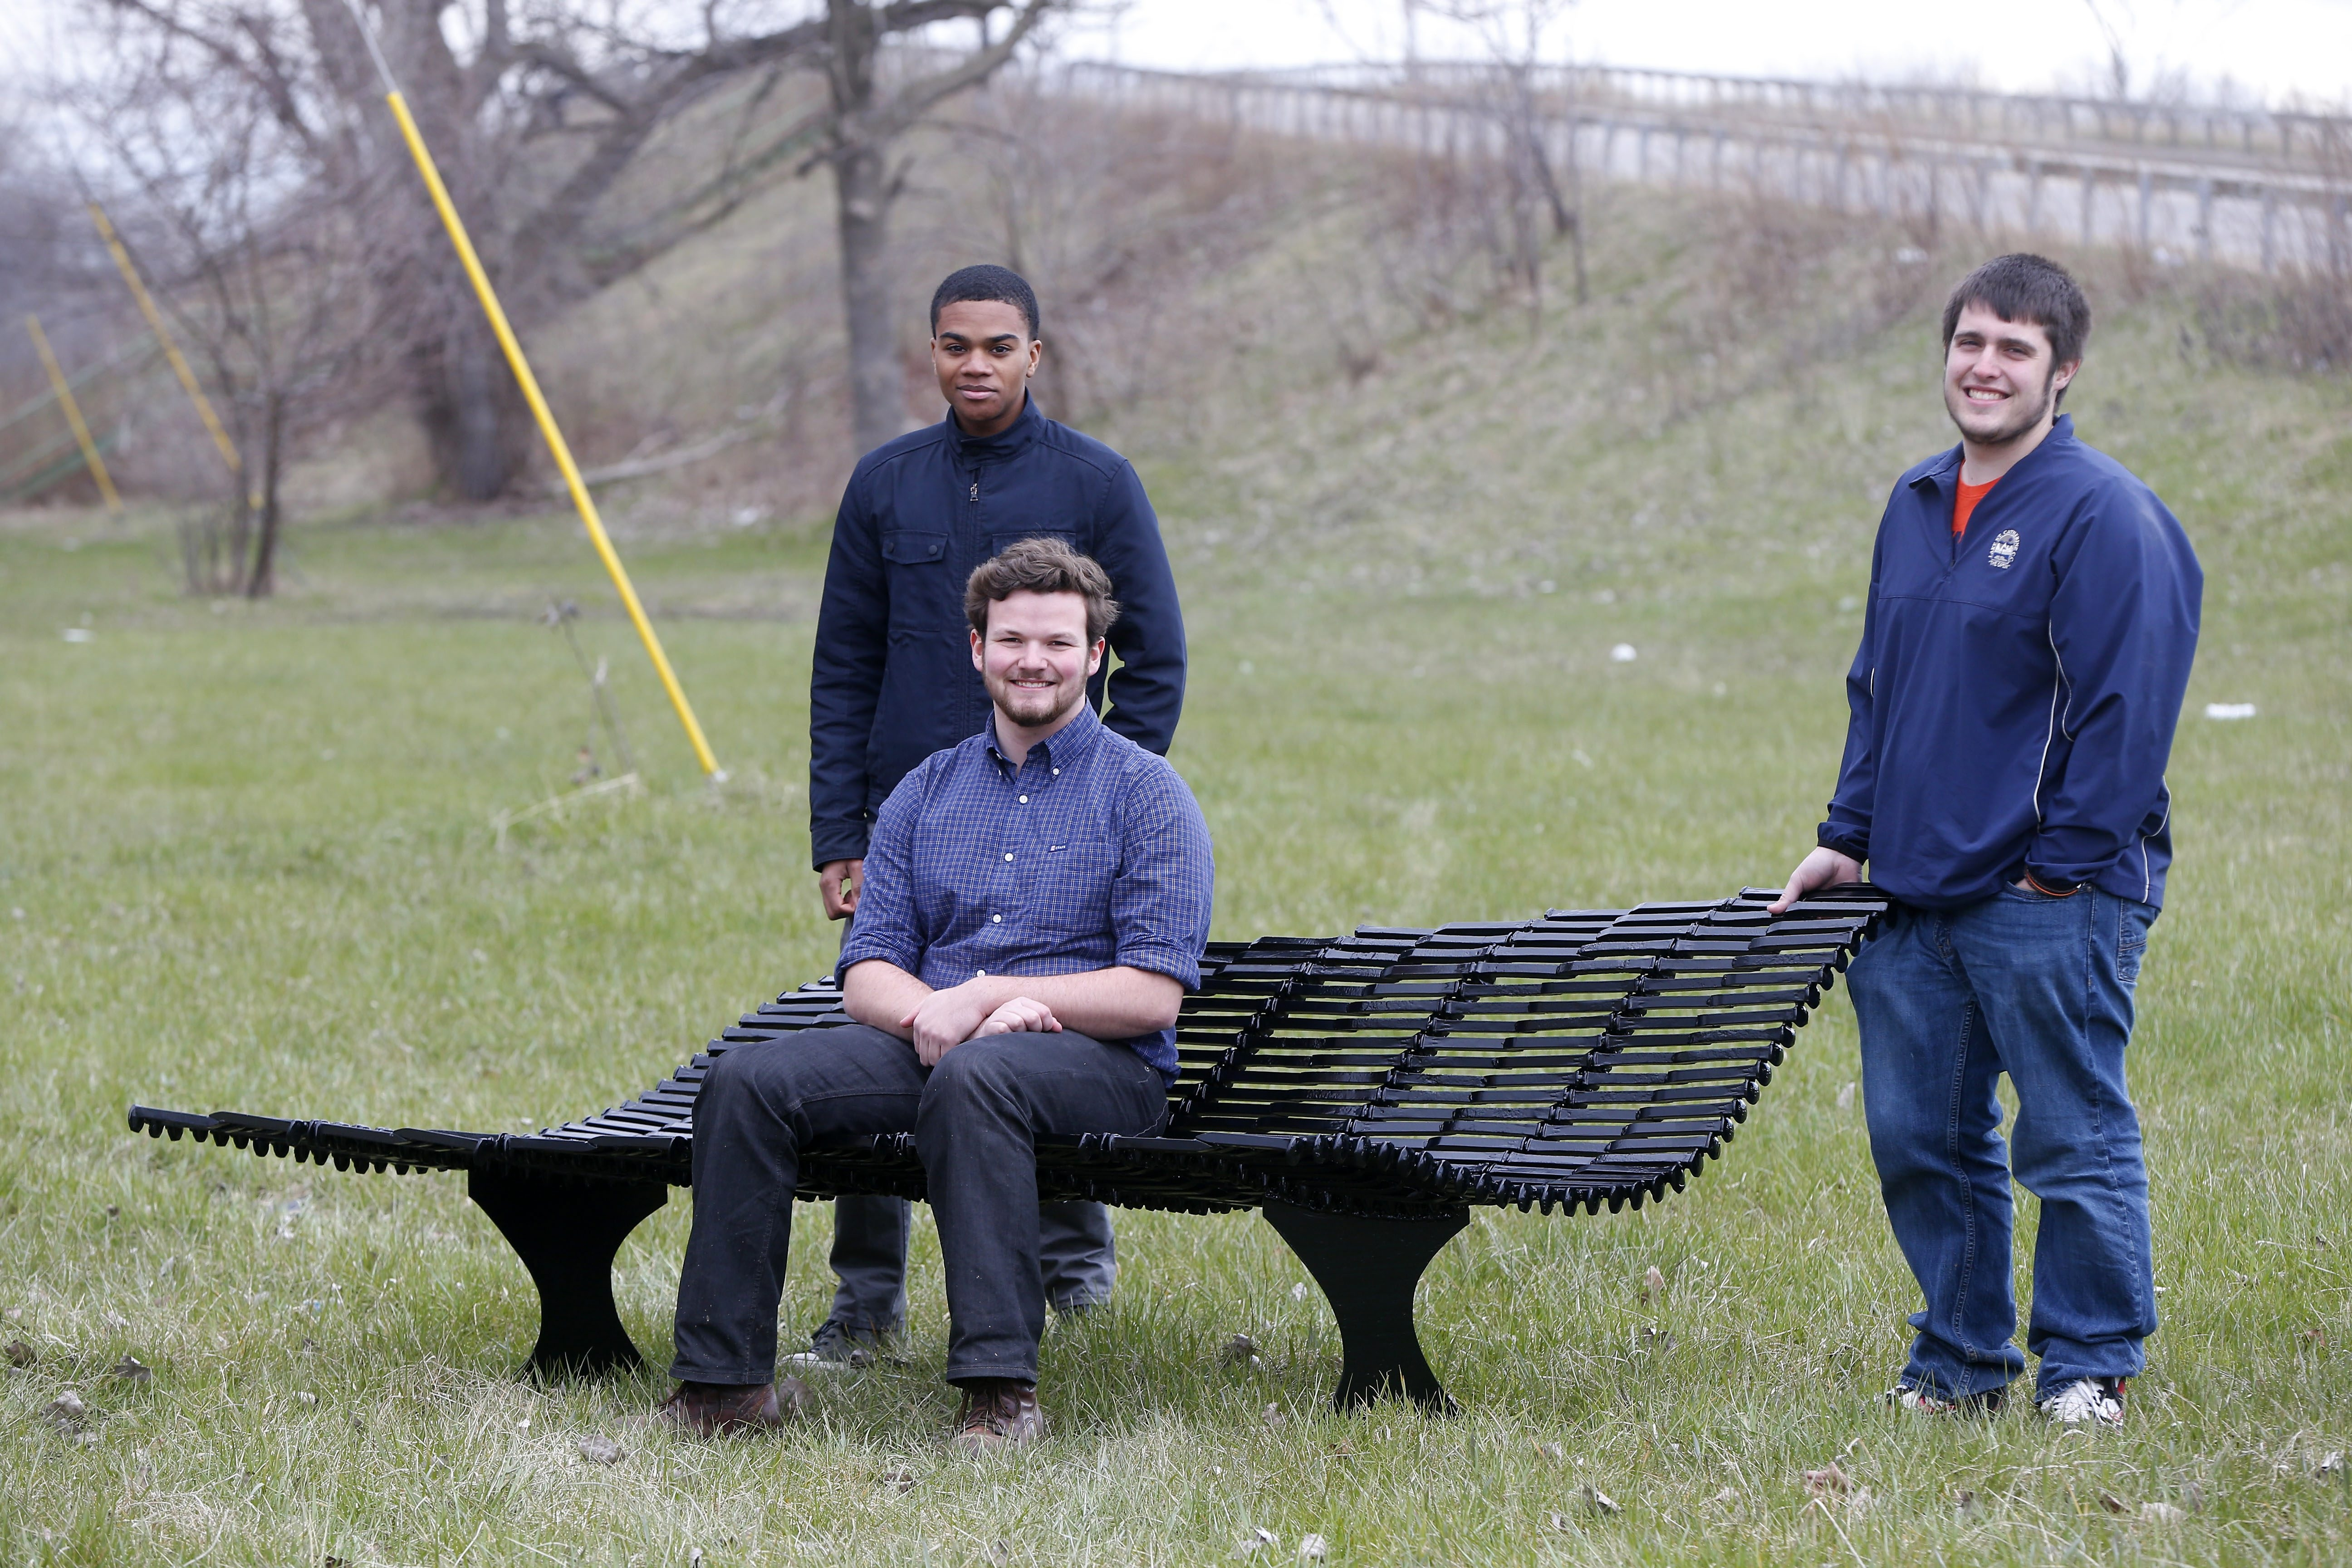 Students from UB's School of Architecture and Planning – from left, Stephon-Rae Jackson, Dylan Burns and Garrett Brown – offer a look at the bench created from 438 rail spikes to reflect the history and culture of the Old First Ward as part of community project.